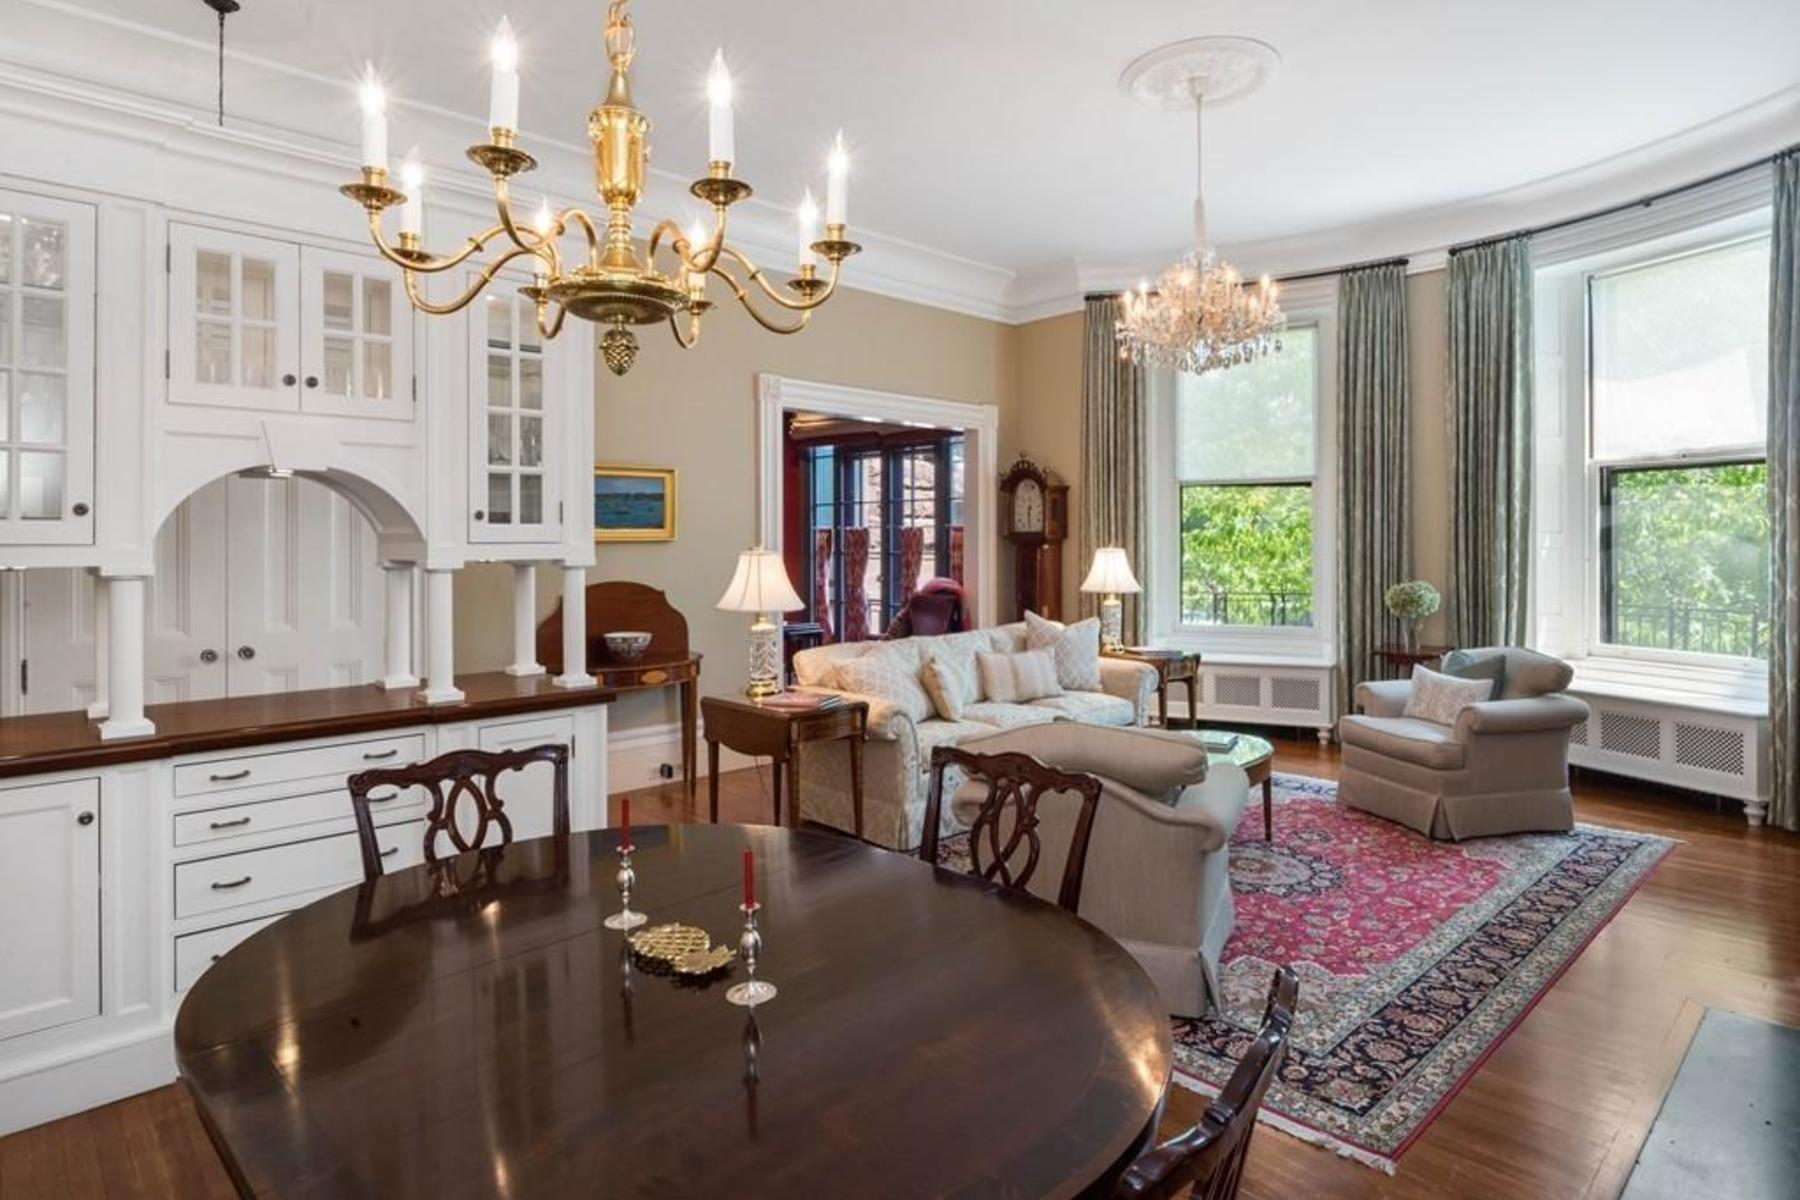 Single Family Home for Sale at 35 Beacon Street 1, Boston 35 Beacon St 1 Boston, Massachusetts 02108 United States